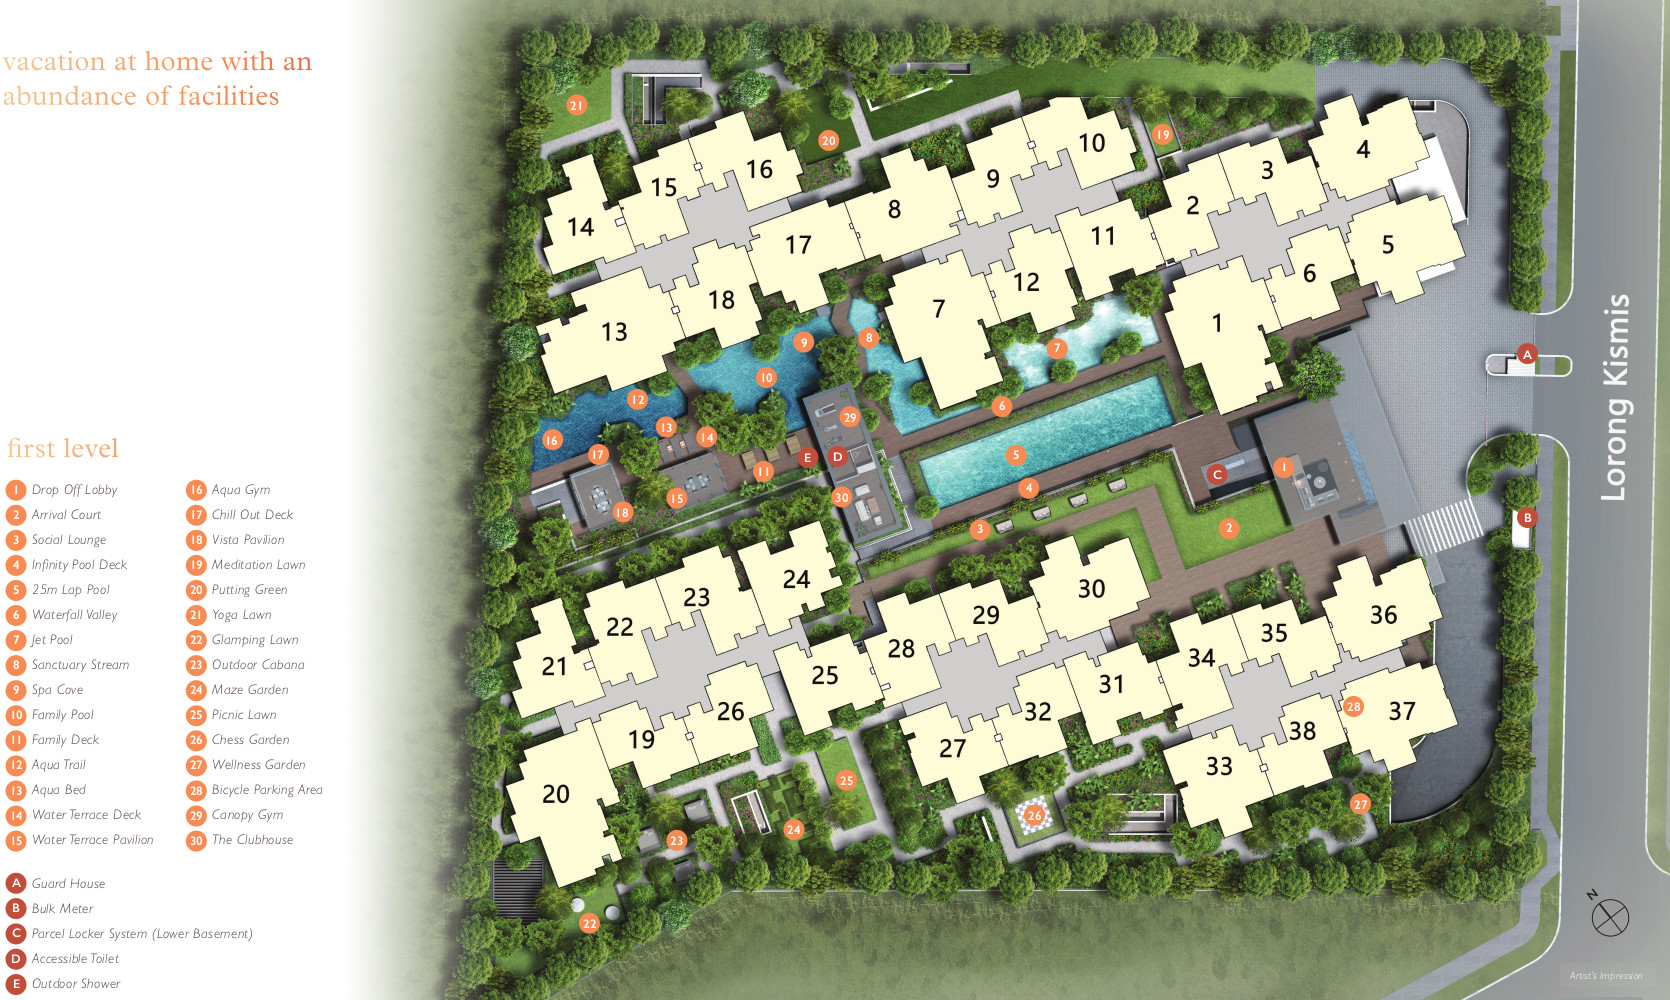 View at Kismis Site Plan . First Level Facilities